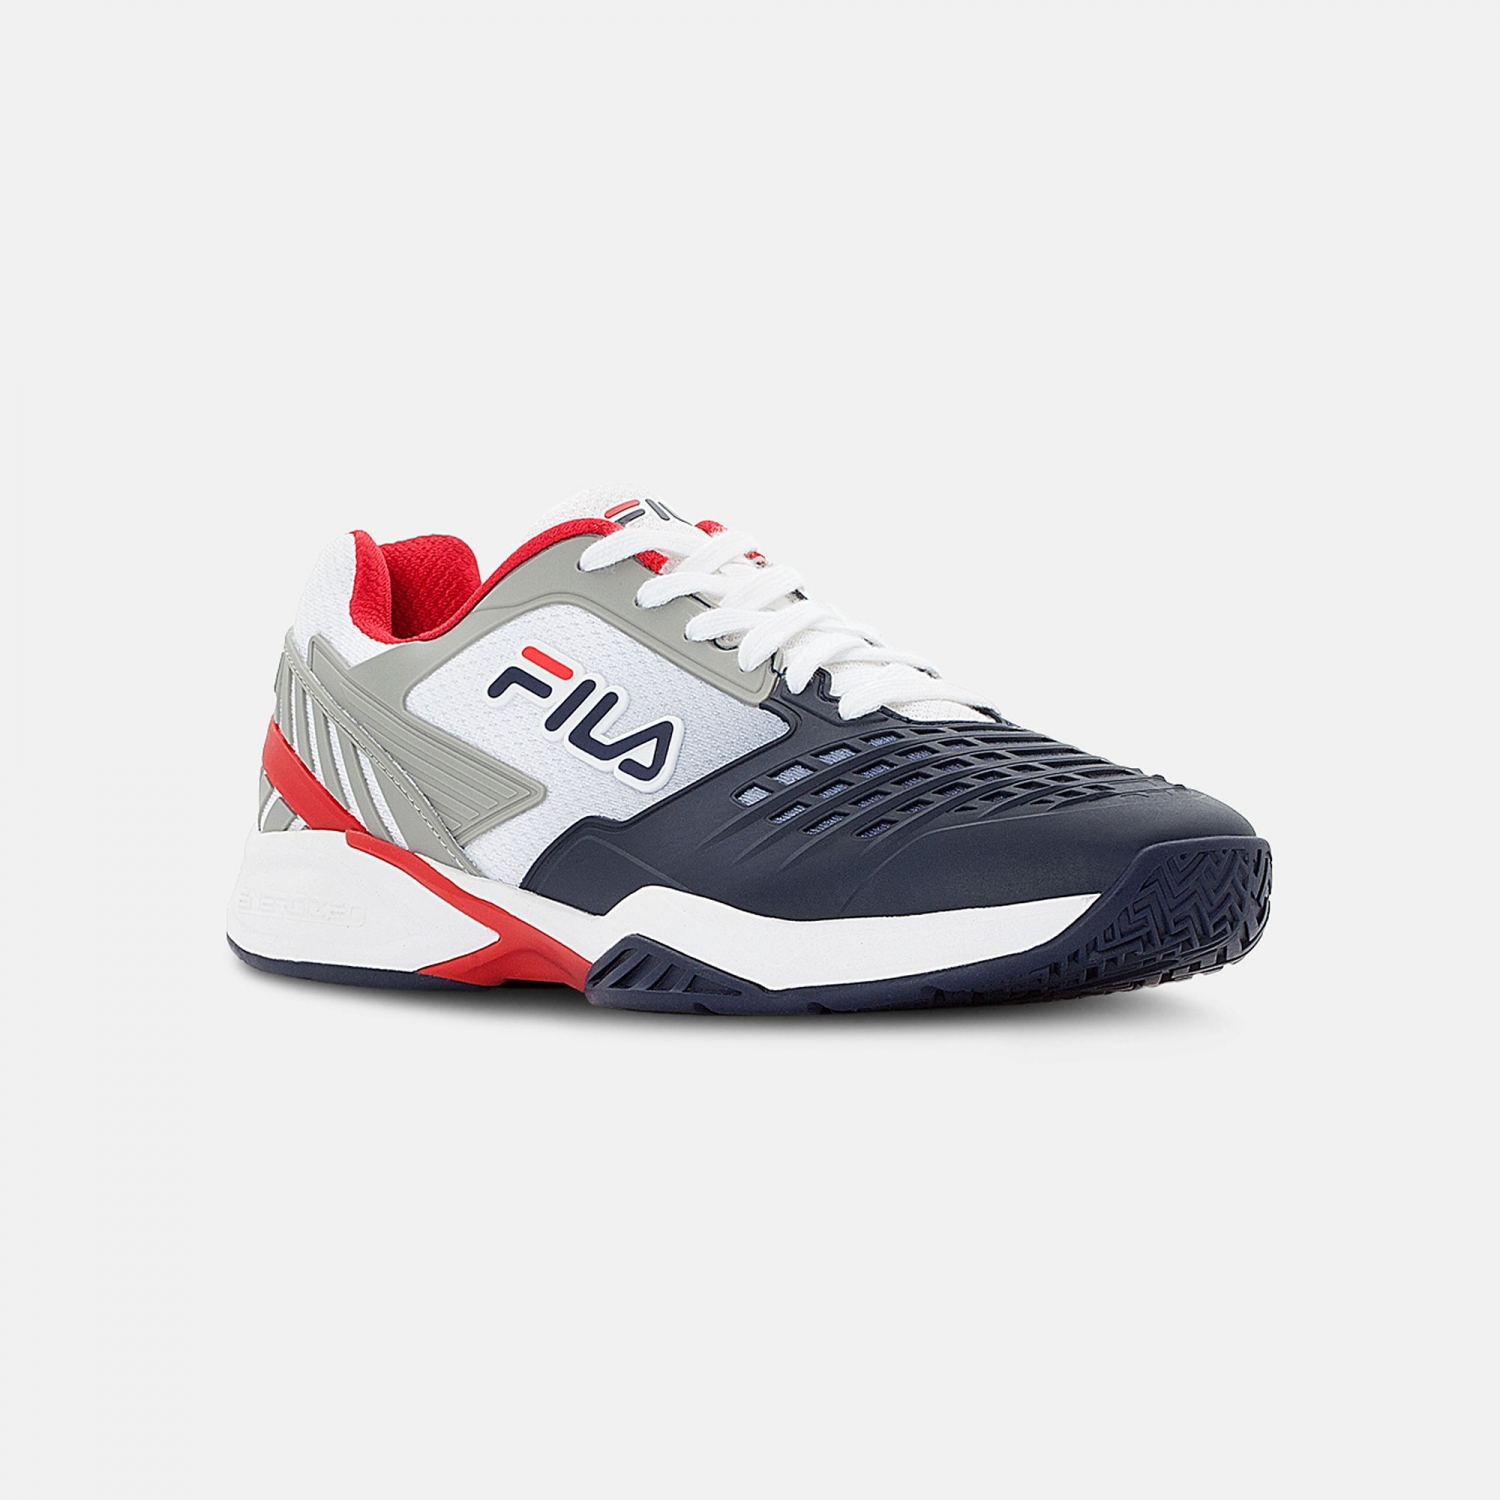 Fila Axilus 2 Energized Tennis Shoe Men white-navy-red Bild 2